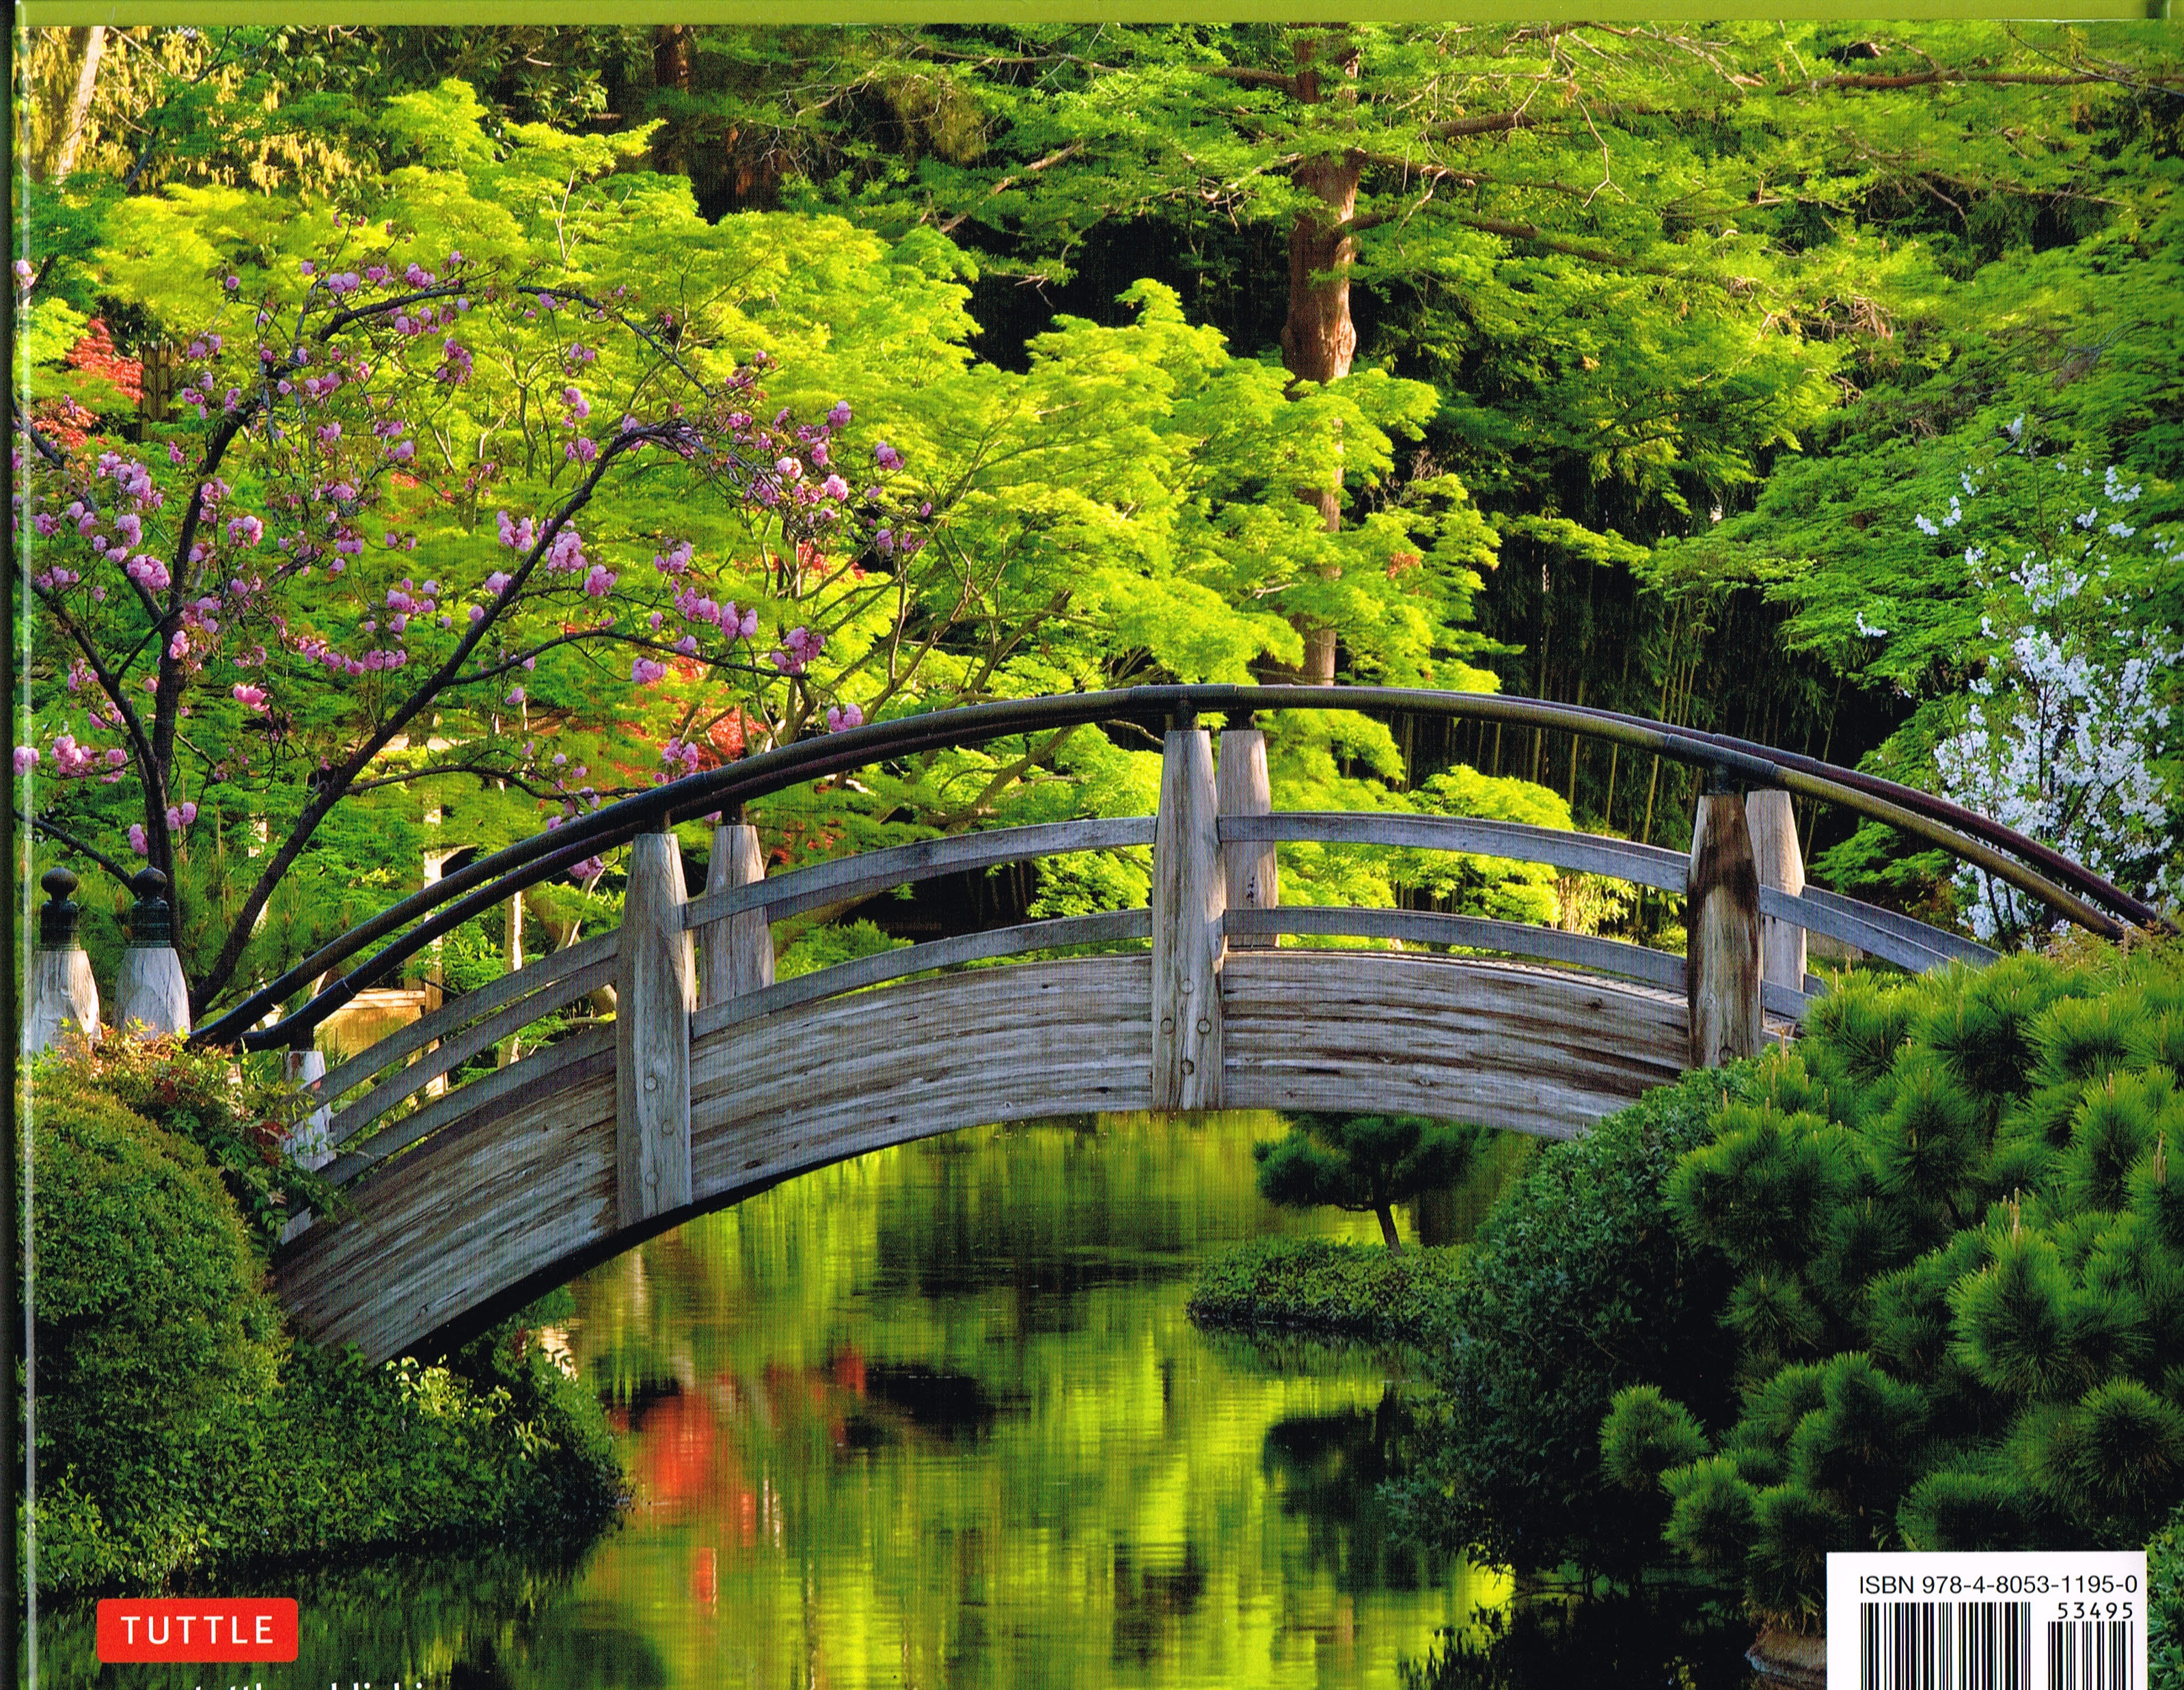 Back Cover Photo By David Cobb Of The Japanese Garden At Fort Worth Botanic  Garden In